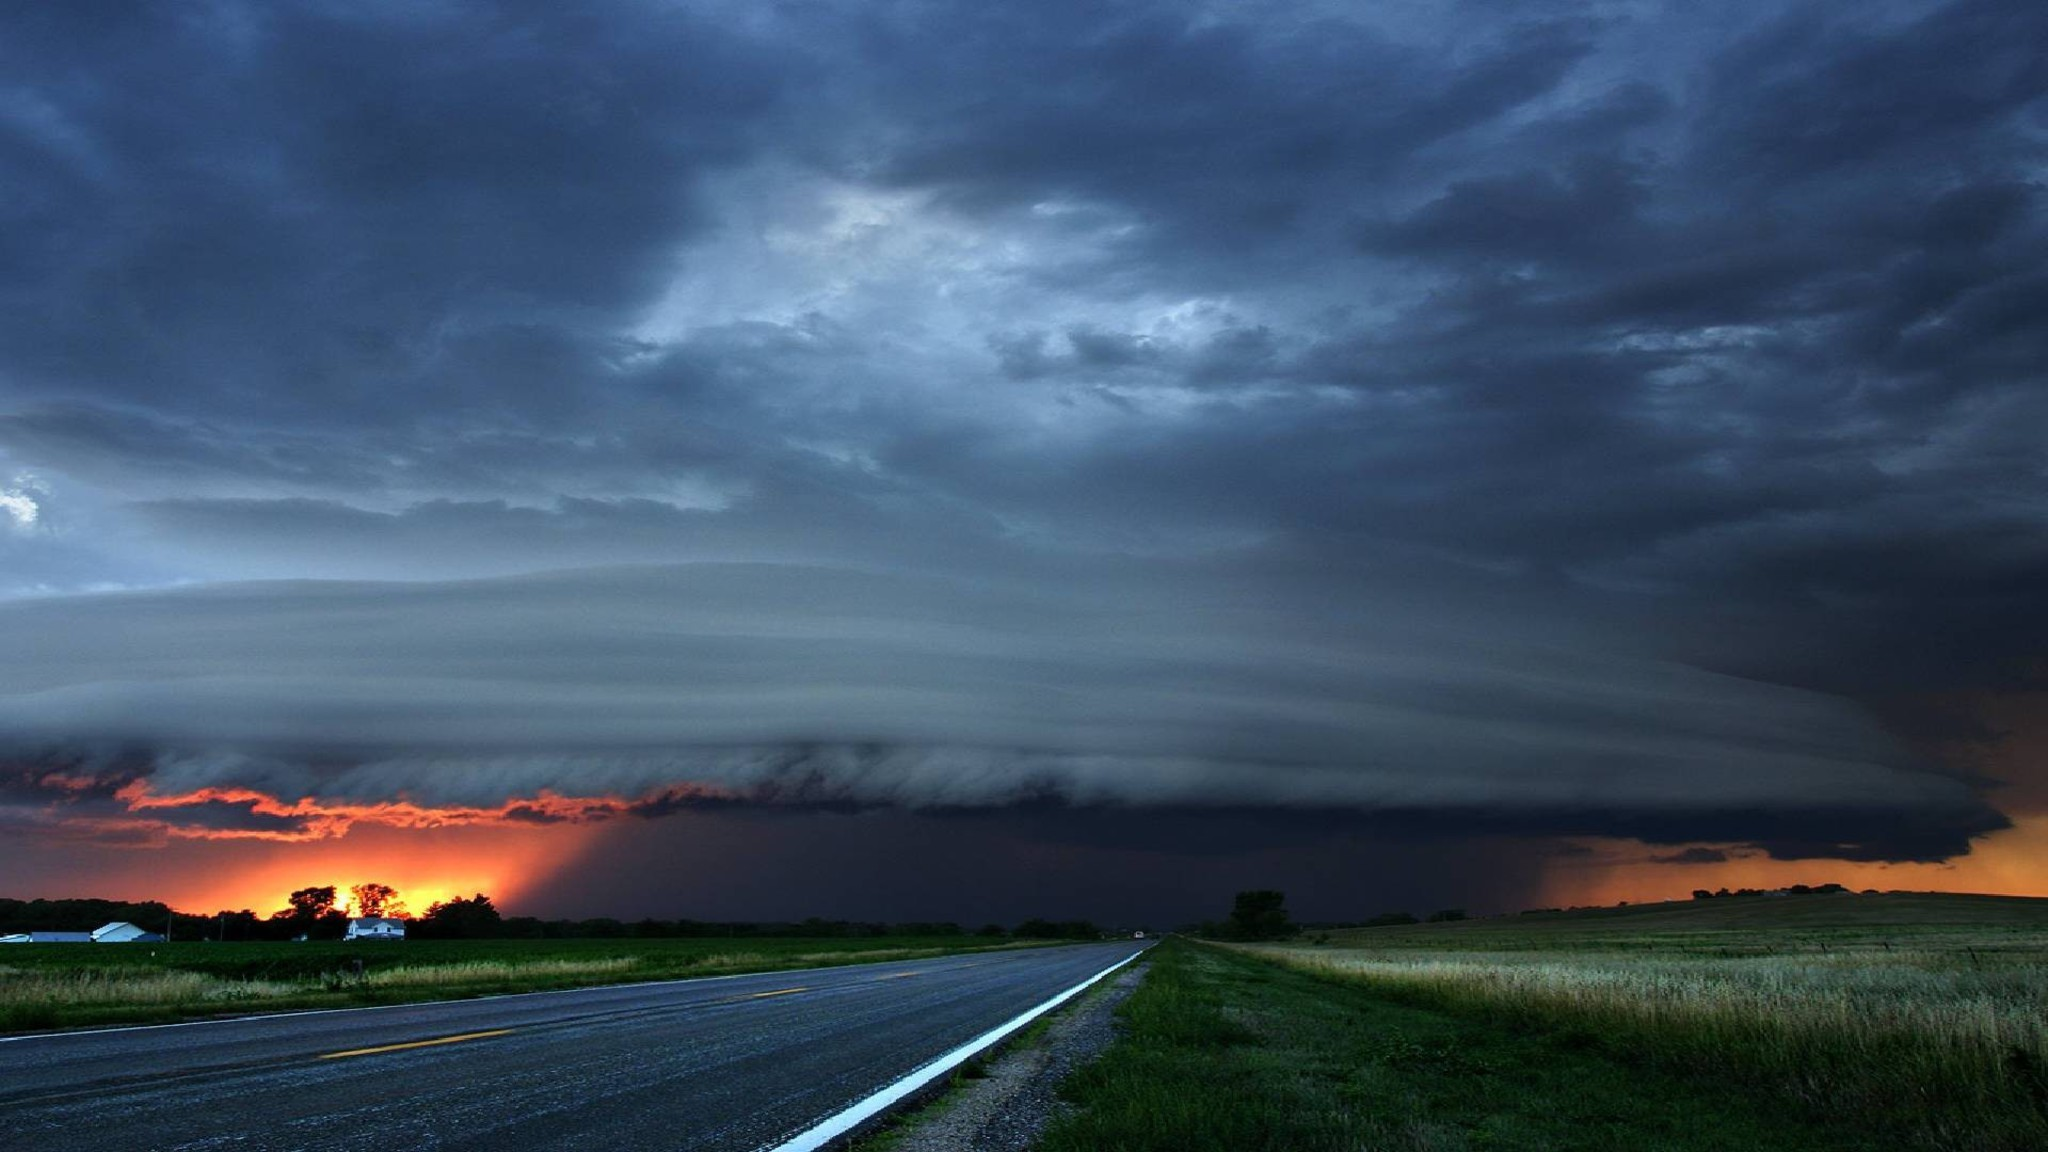 Storm Clouds At Sunset Wallpaper Allwallpaper In 13312